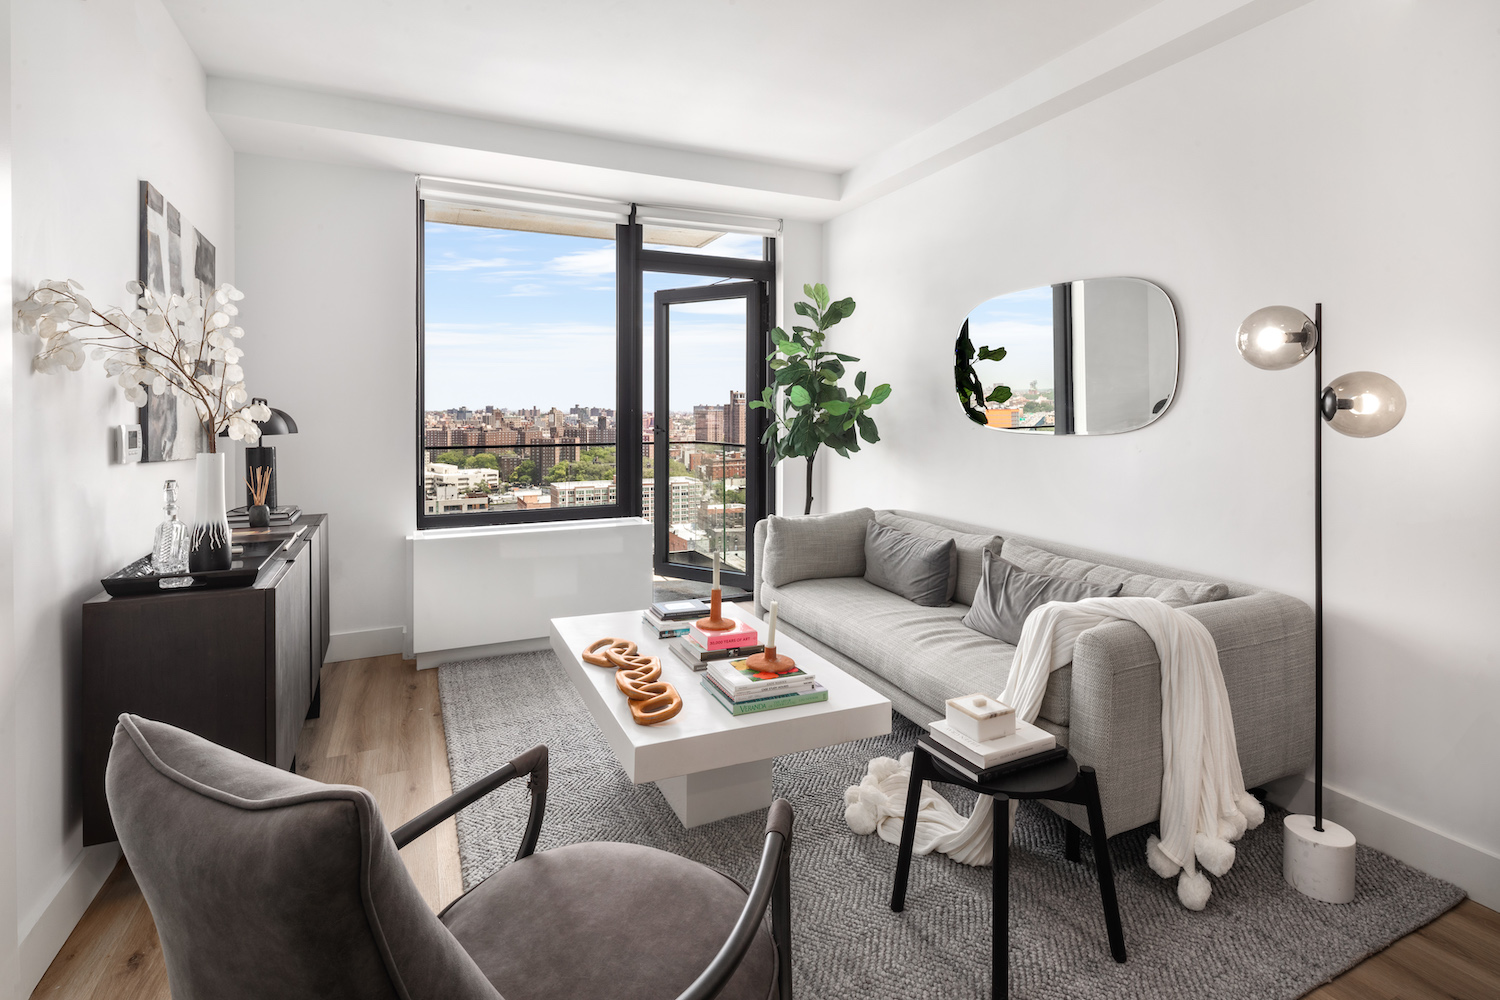 Residences at The Arches in Mott Haven, The Bronx